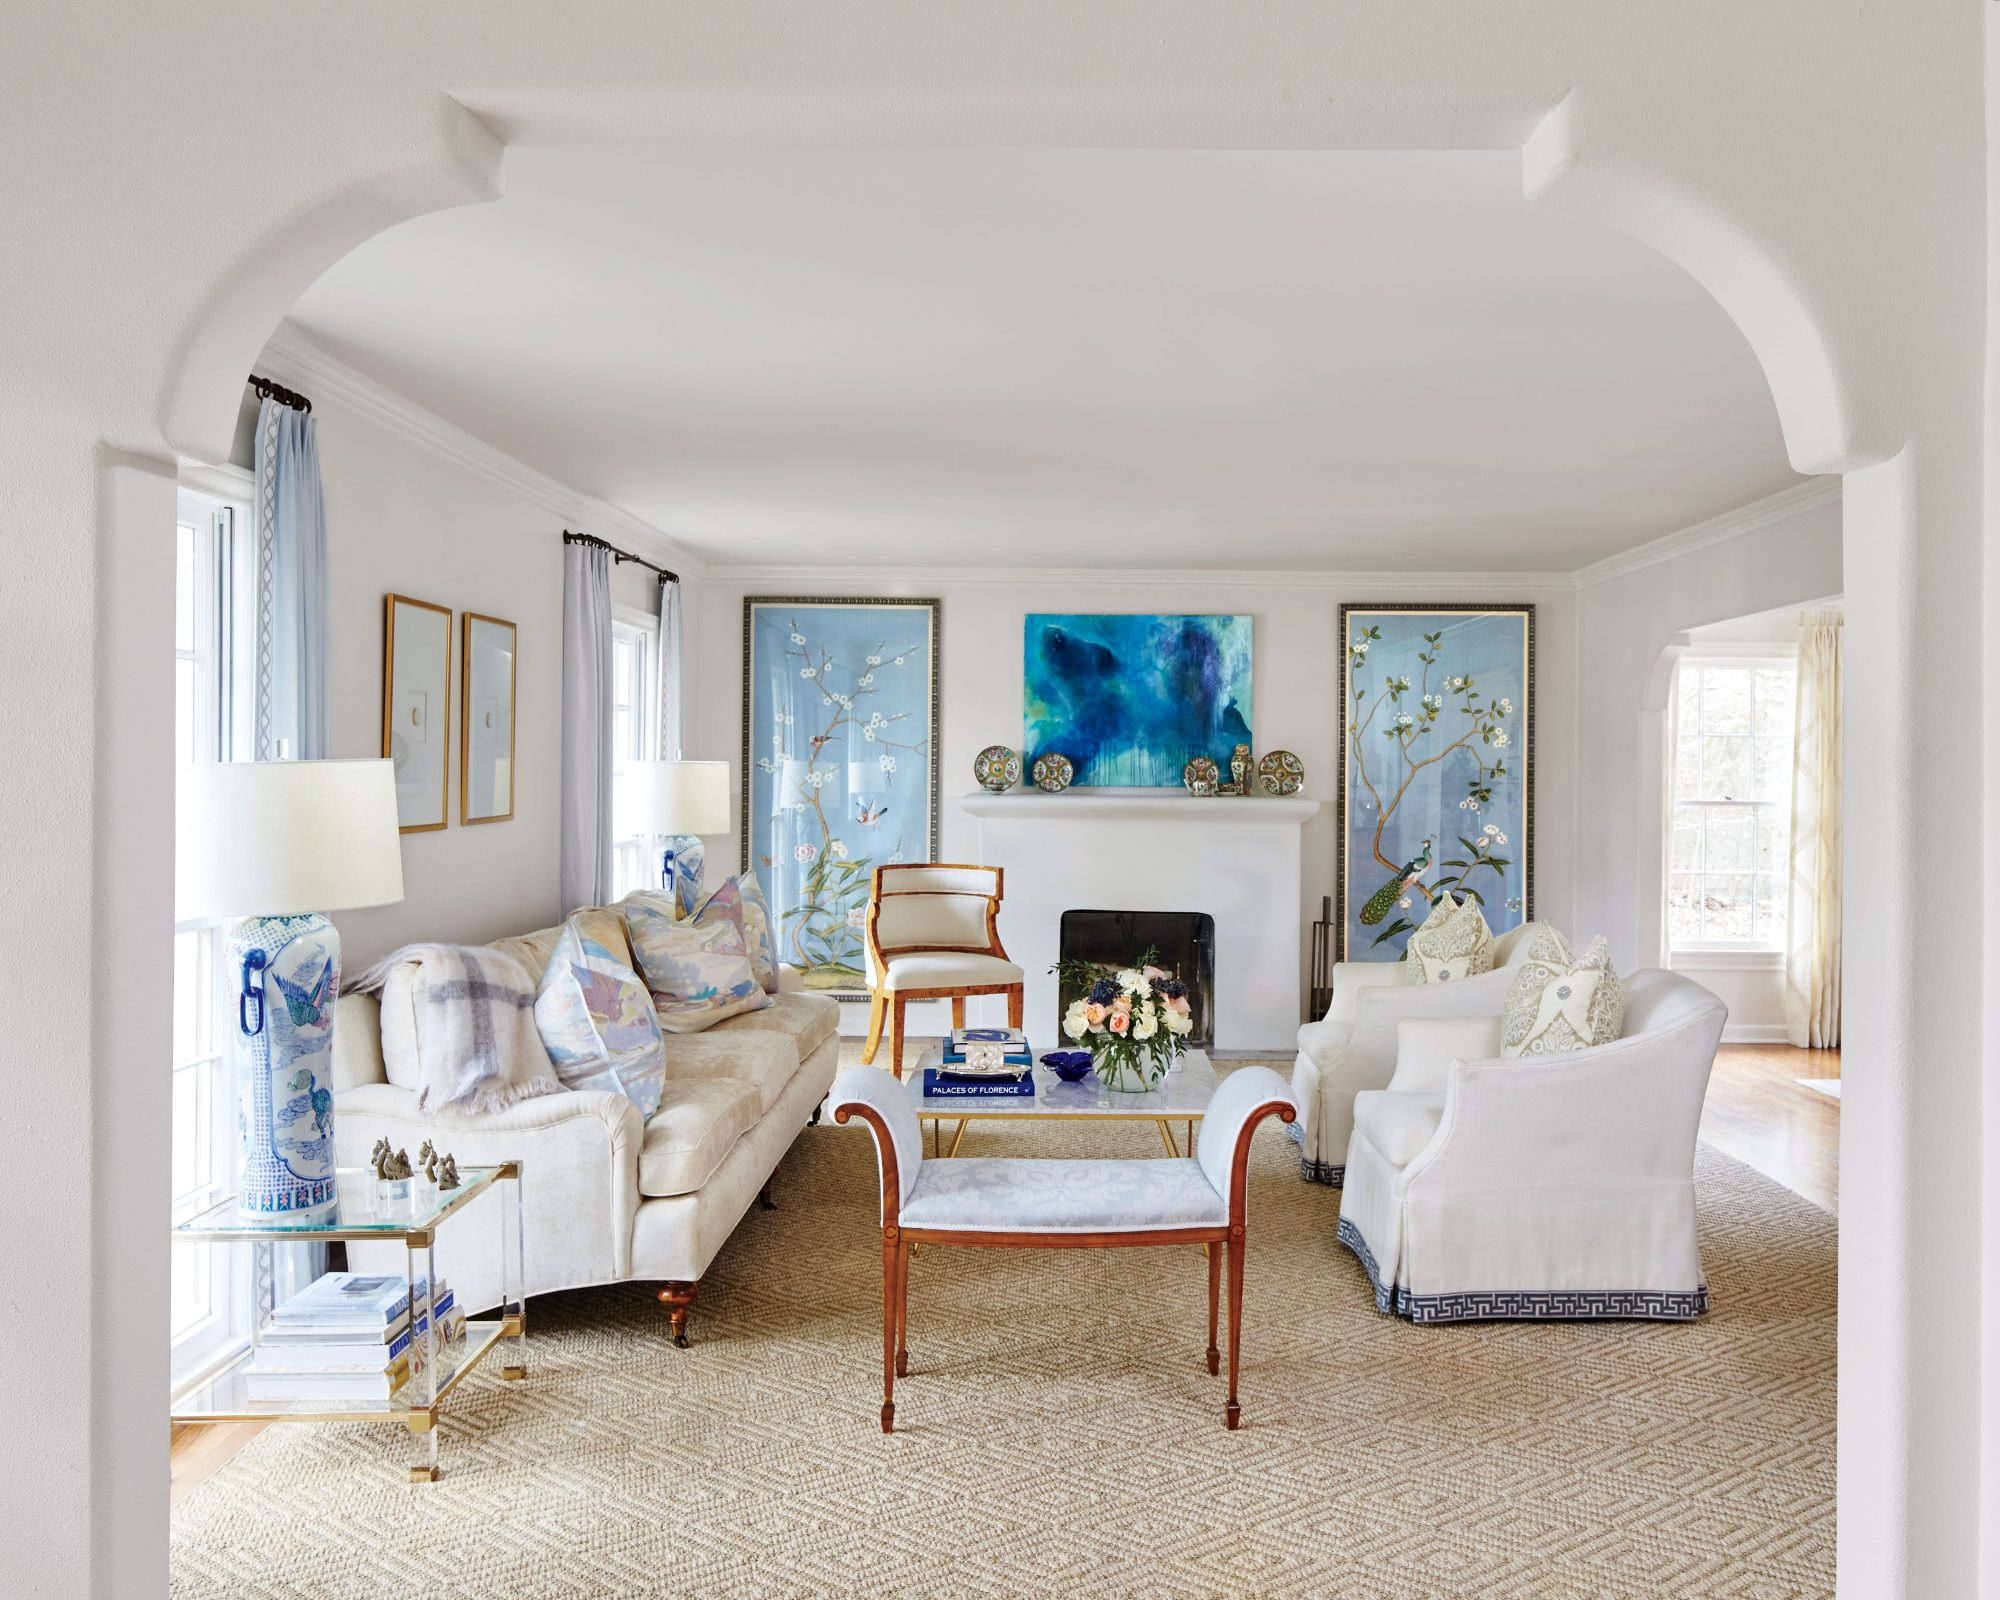 15 Best Living Room Wall Decor Ideas - How to Decorate ...